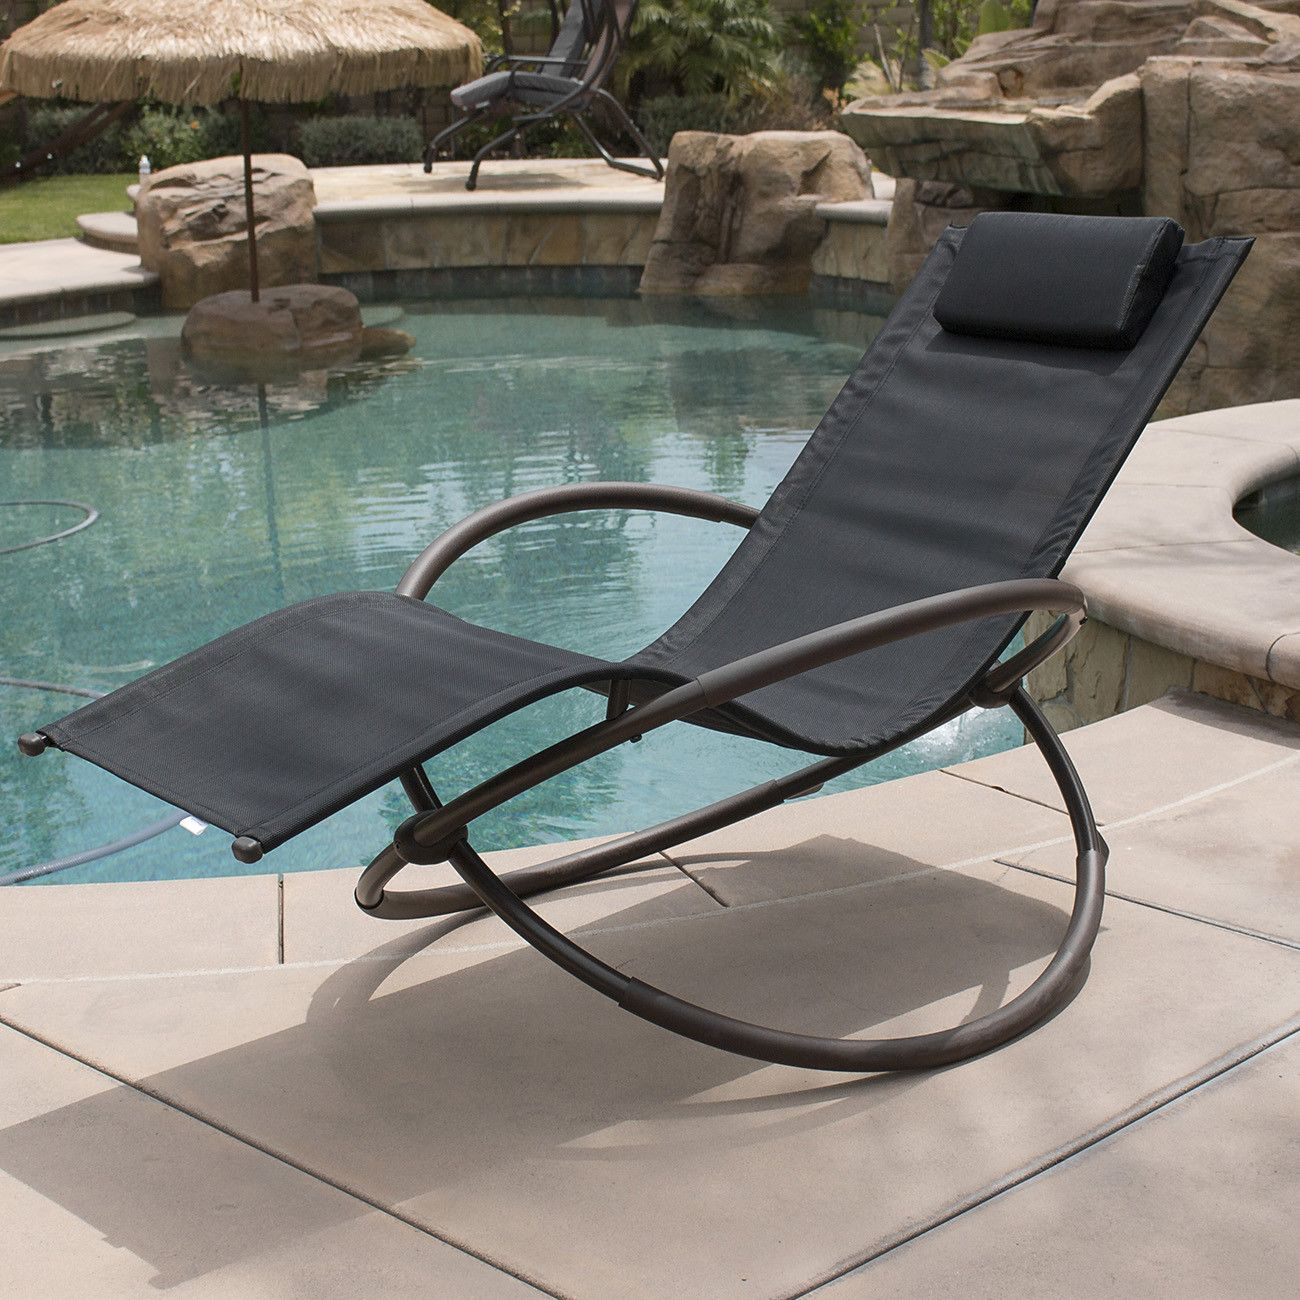 Orbital Chaise Lounge with Cushion (With images) Lounge